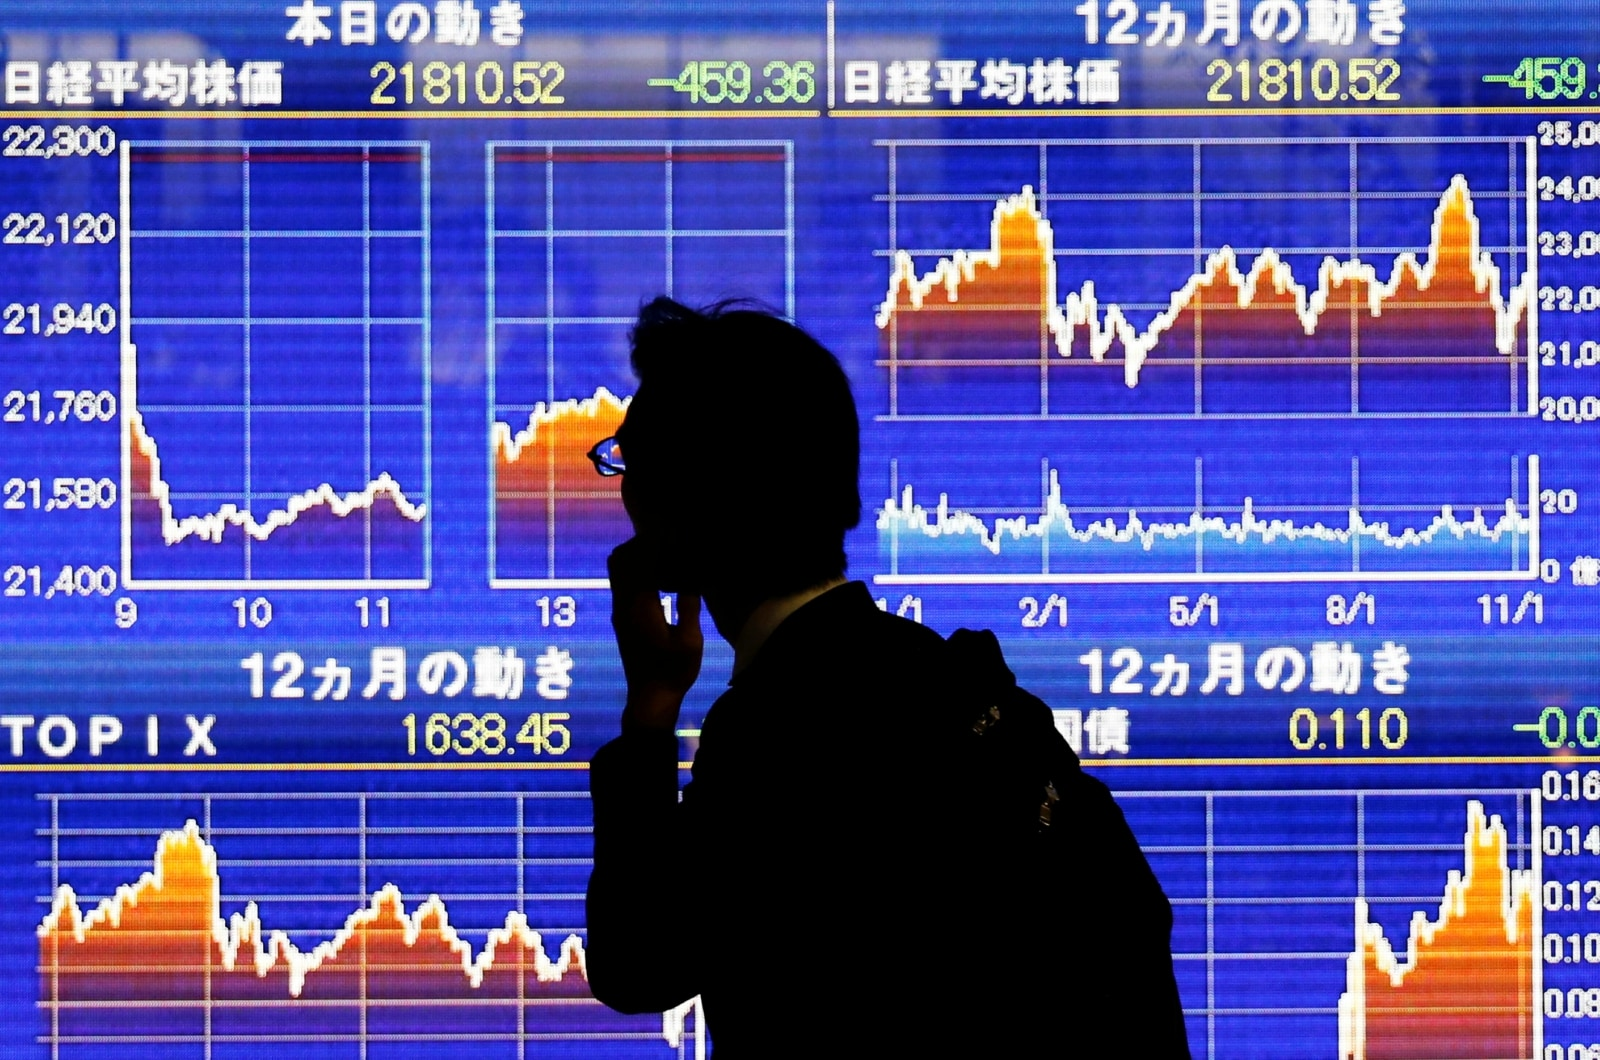 1. Asia:  Markets in Asia remain subdued on Wednesday morning as initial enthusiasm over the latest U.S.-China trade truce was overtaken by fresh concerns over Washington's threat of tariffs on additional European goods. MSCI's broadest index of Asia-Pacific shares outside Japan was almost flat, while Japan's Nikkei was down 0.4 percent in early trade. The Nikkei slipped 0.24 percent in early trade, while South Korea's Kospi added 0.11 percent. (Image: Reuters)